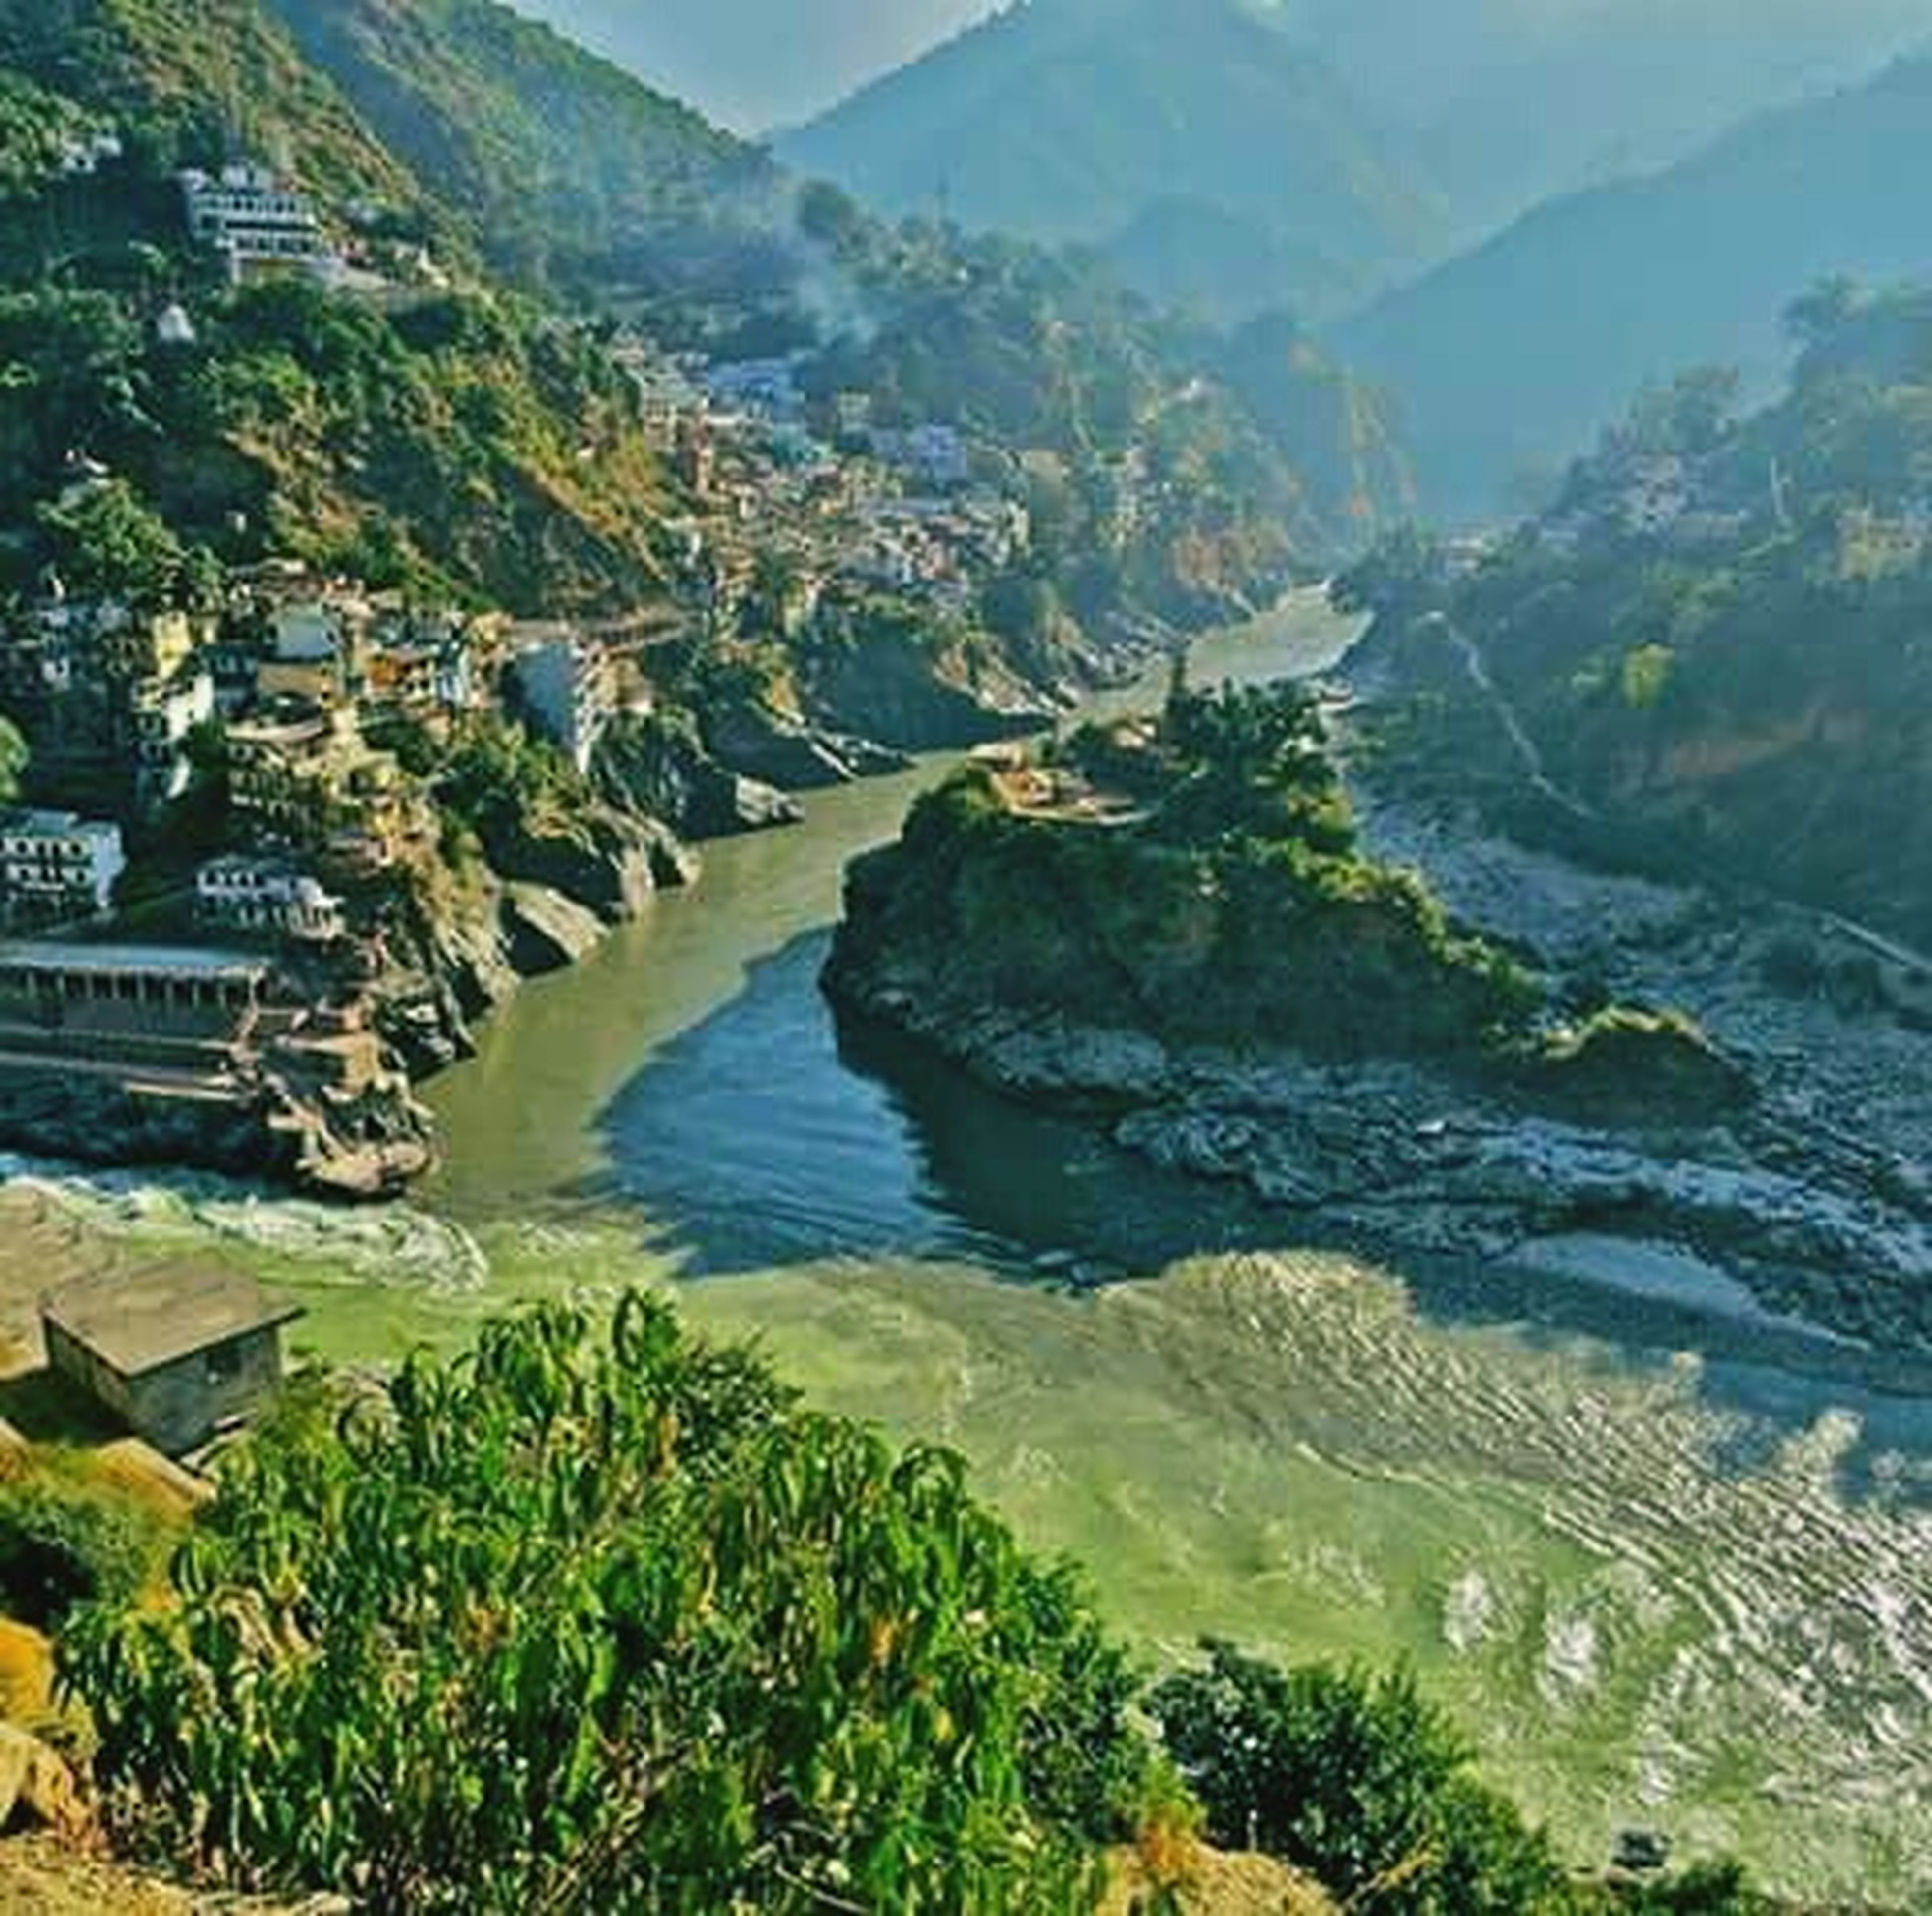 mountain, water, high angle view, building exterior, mountain range, built structure, scenics, architecture, landscape, tree, tranquil scene, river, nature, beauty in nature, tranquility, house, town, sky, residential structure, day